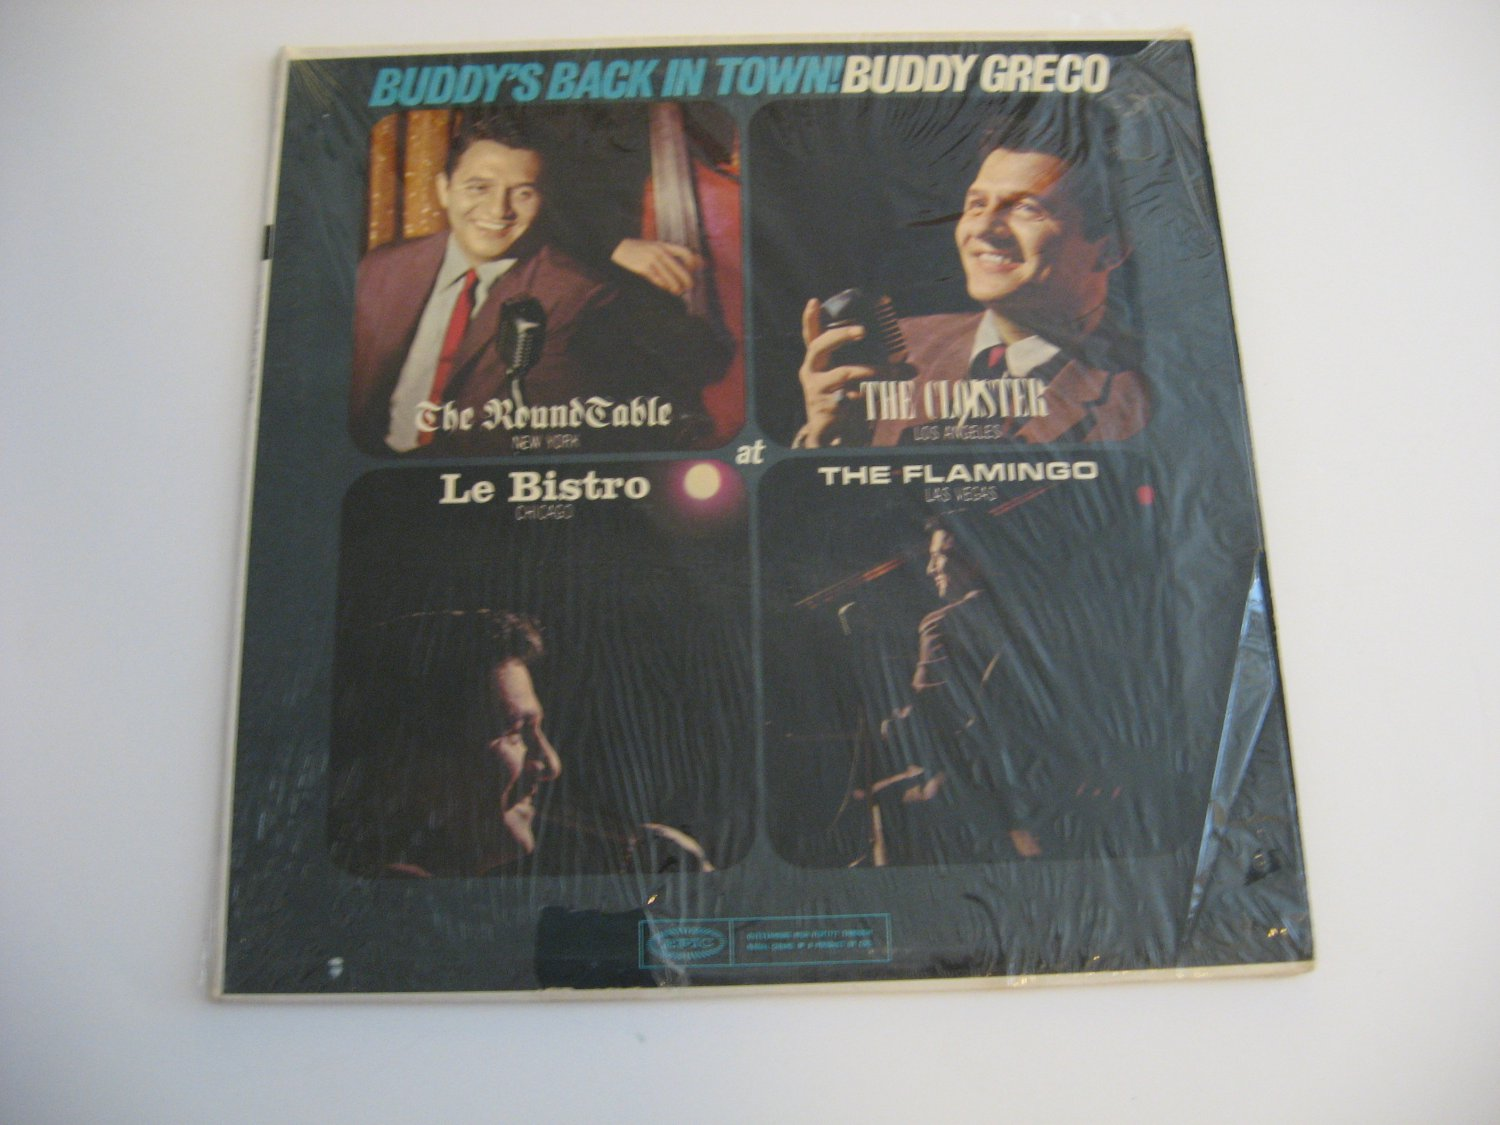 Buddy Greco - Buddy's Back In Town - 1963